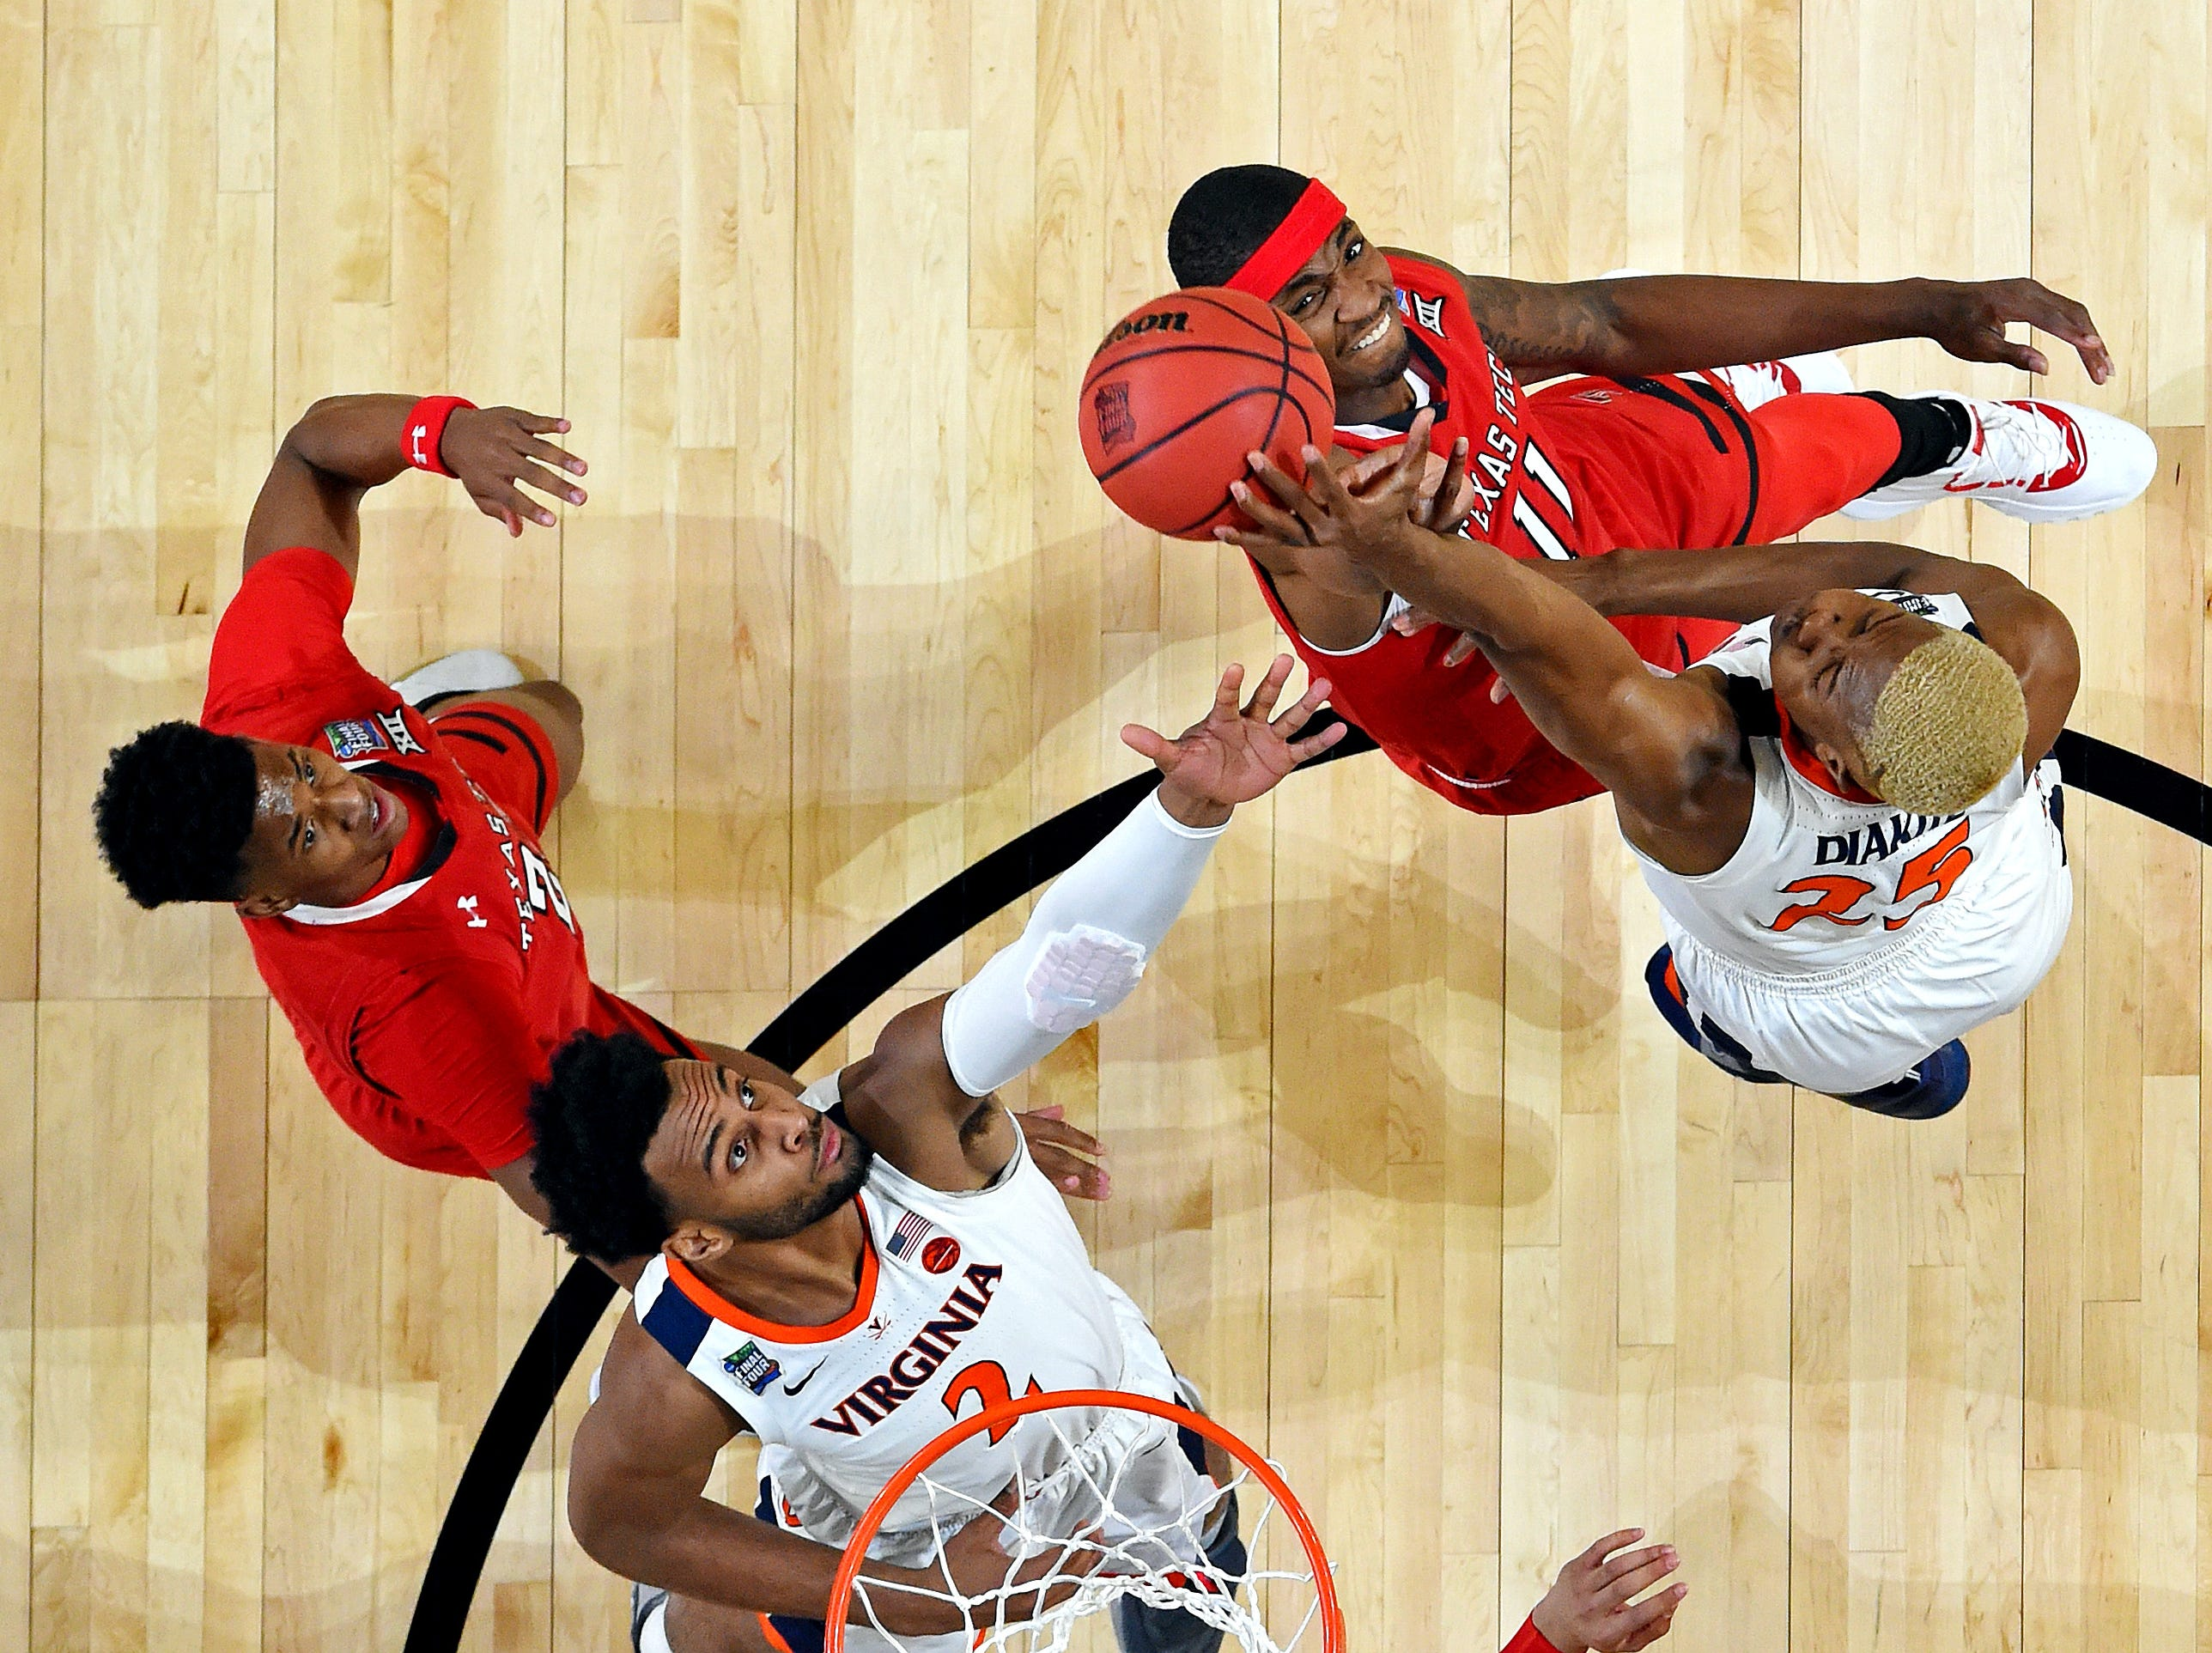 Apr 8, 2019; Minneapolis, MN, USA; Virginia Cavaliers forward Mamadi Diakite (25) blocks a shot by Texas Tech Red Raiders forward Tariq Owens (11) during the first half in the championship game of the 2019 men's Final Four at US Bank Stadium. Mandatory Credit: Bob Donnan-USA TODAY Sports